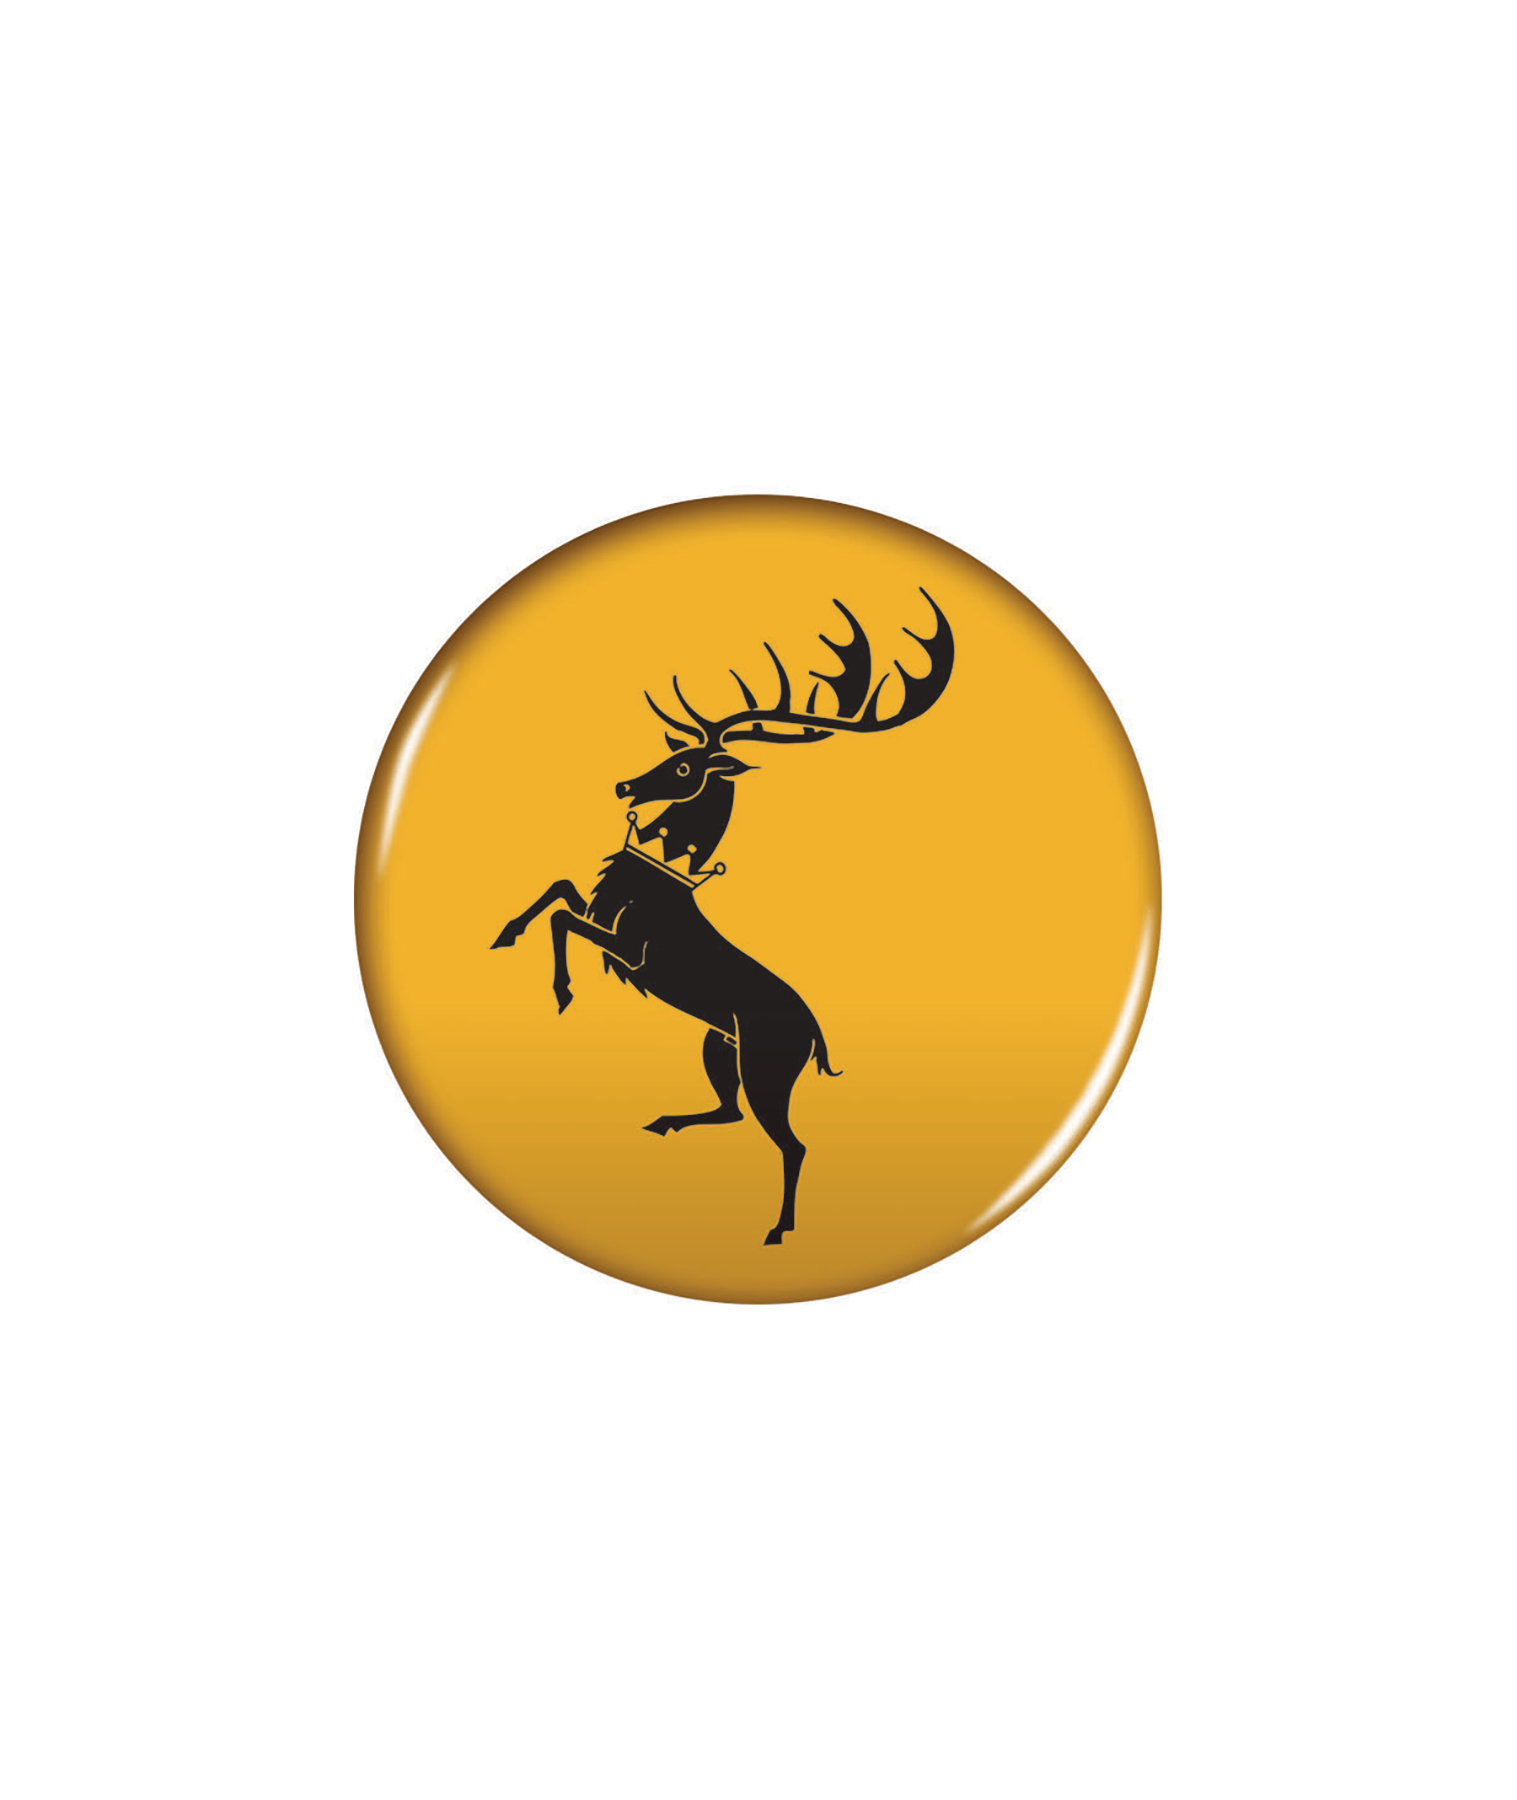 GAME OF THRONES MAGNET 2.25 IN BARATHEON